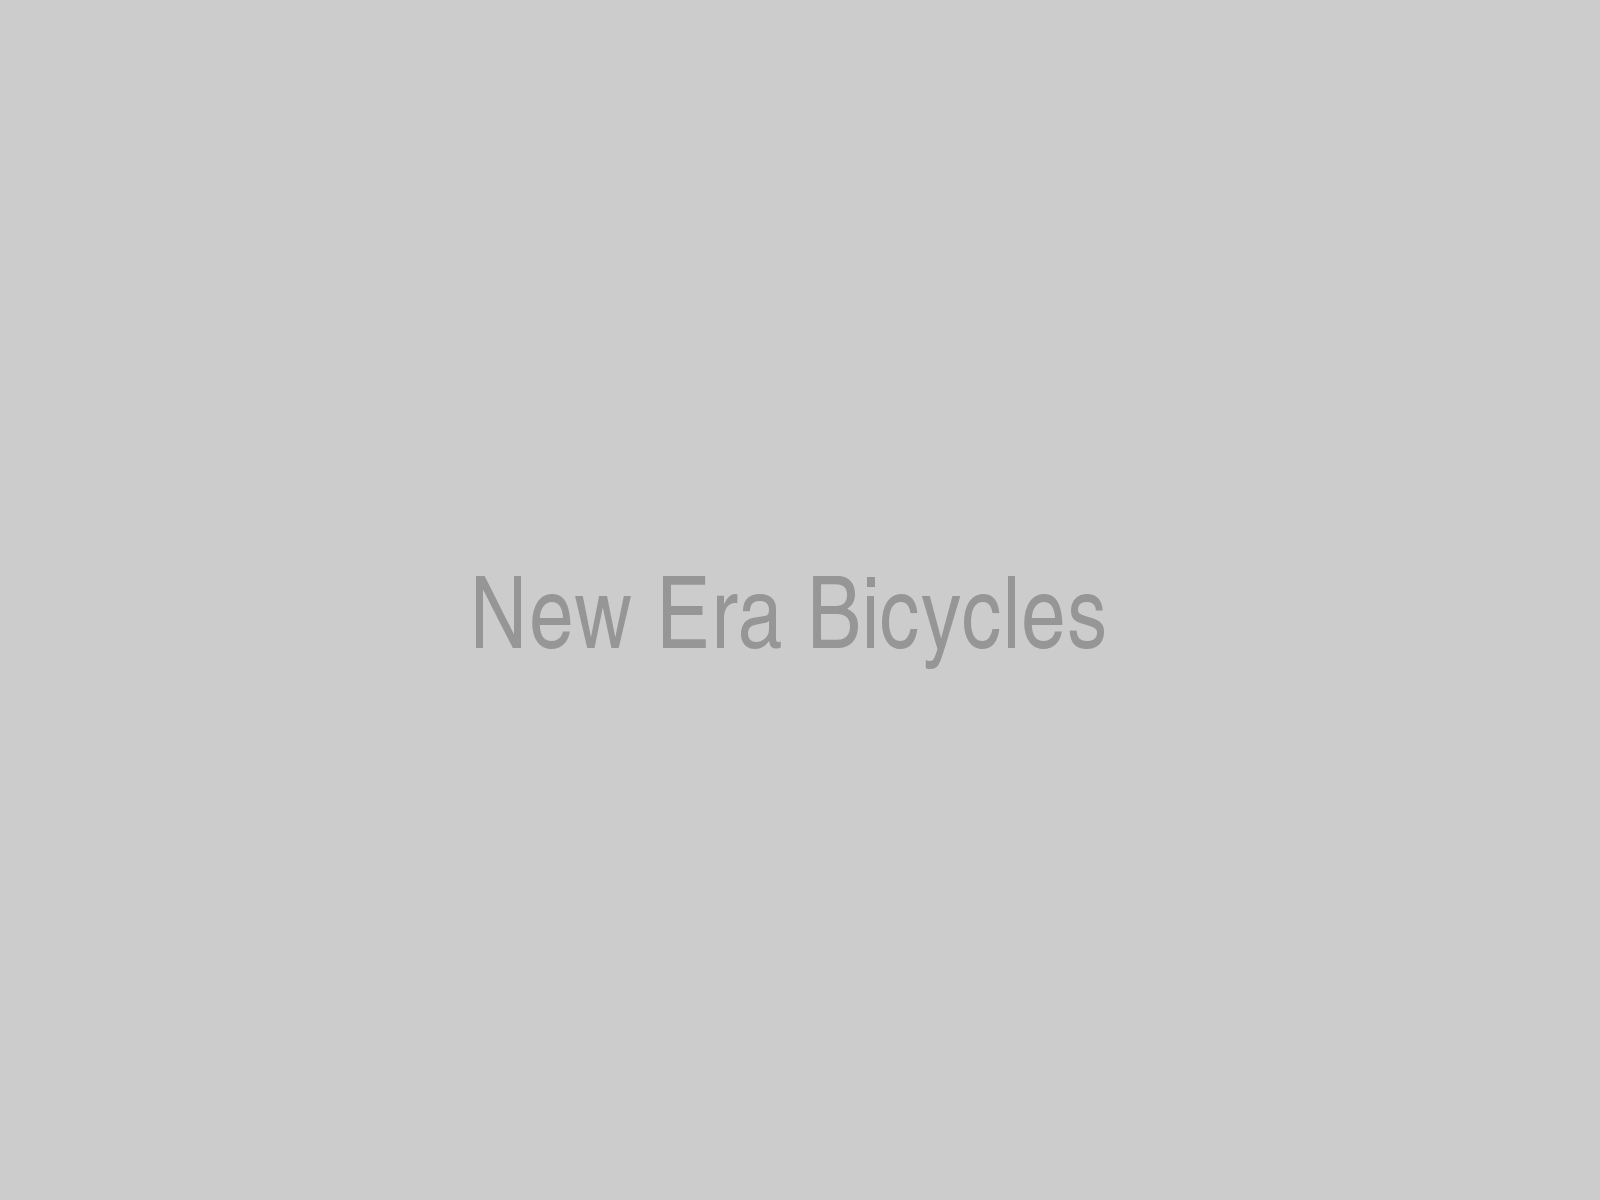 New Era Bicycles